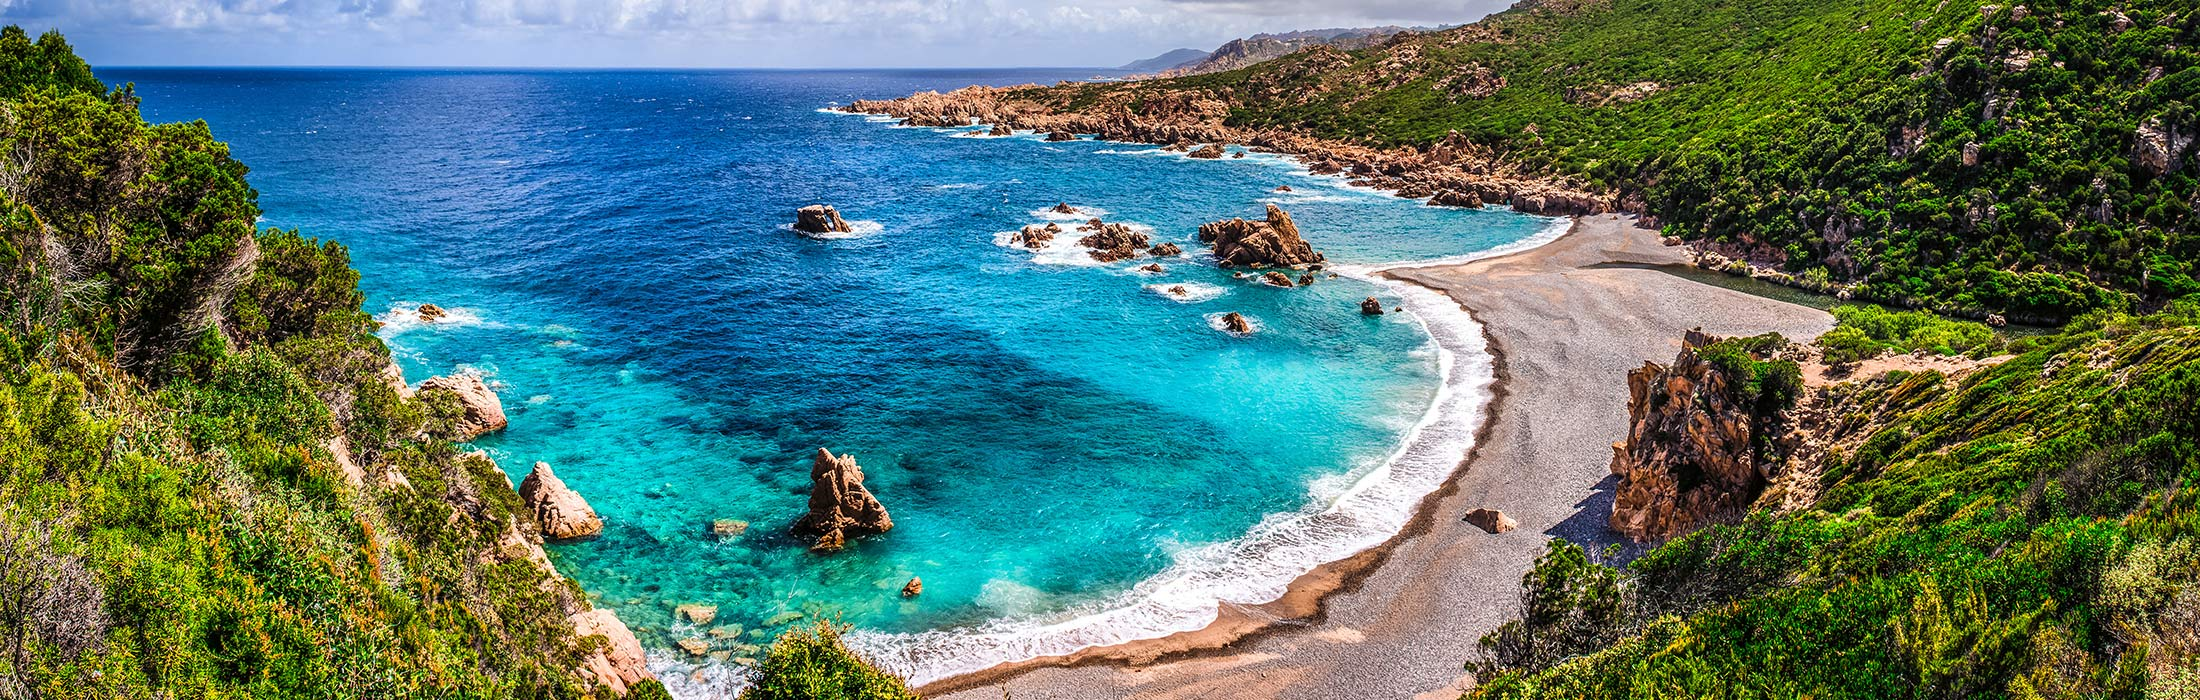 top yacht charter destinations mediterranean sardinia and corsica main slider 2